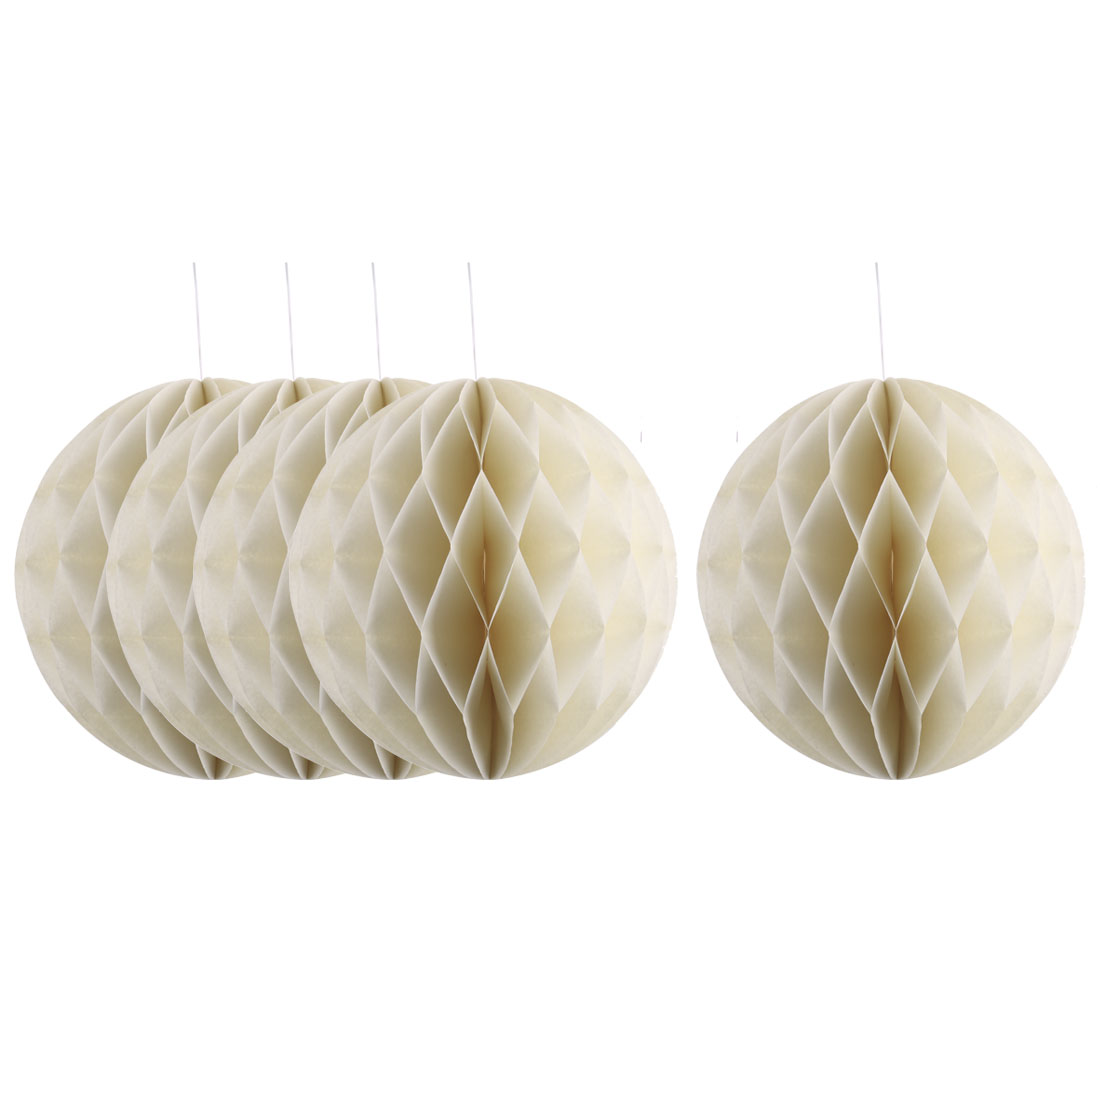 Party Paper DIY Craft Hanging Decor Honeycomb Ball Lantern Beige 8 Inches 5pcs